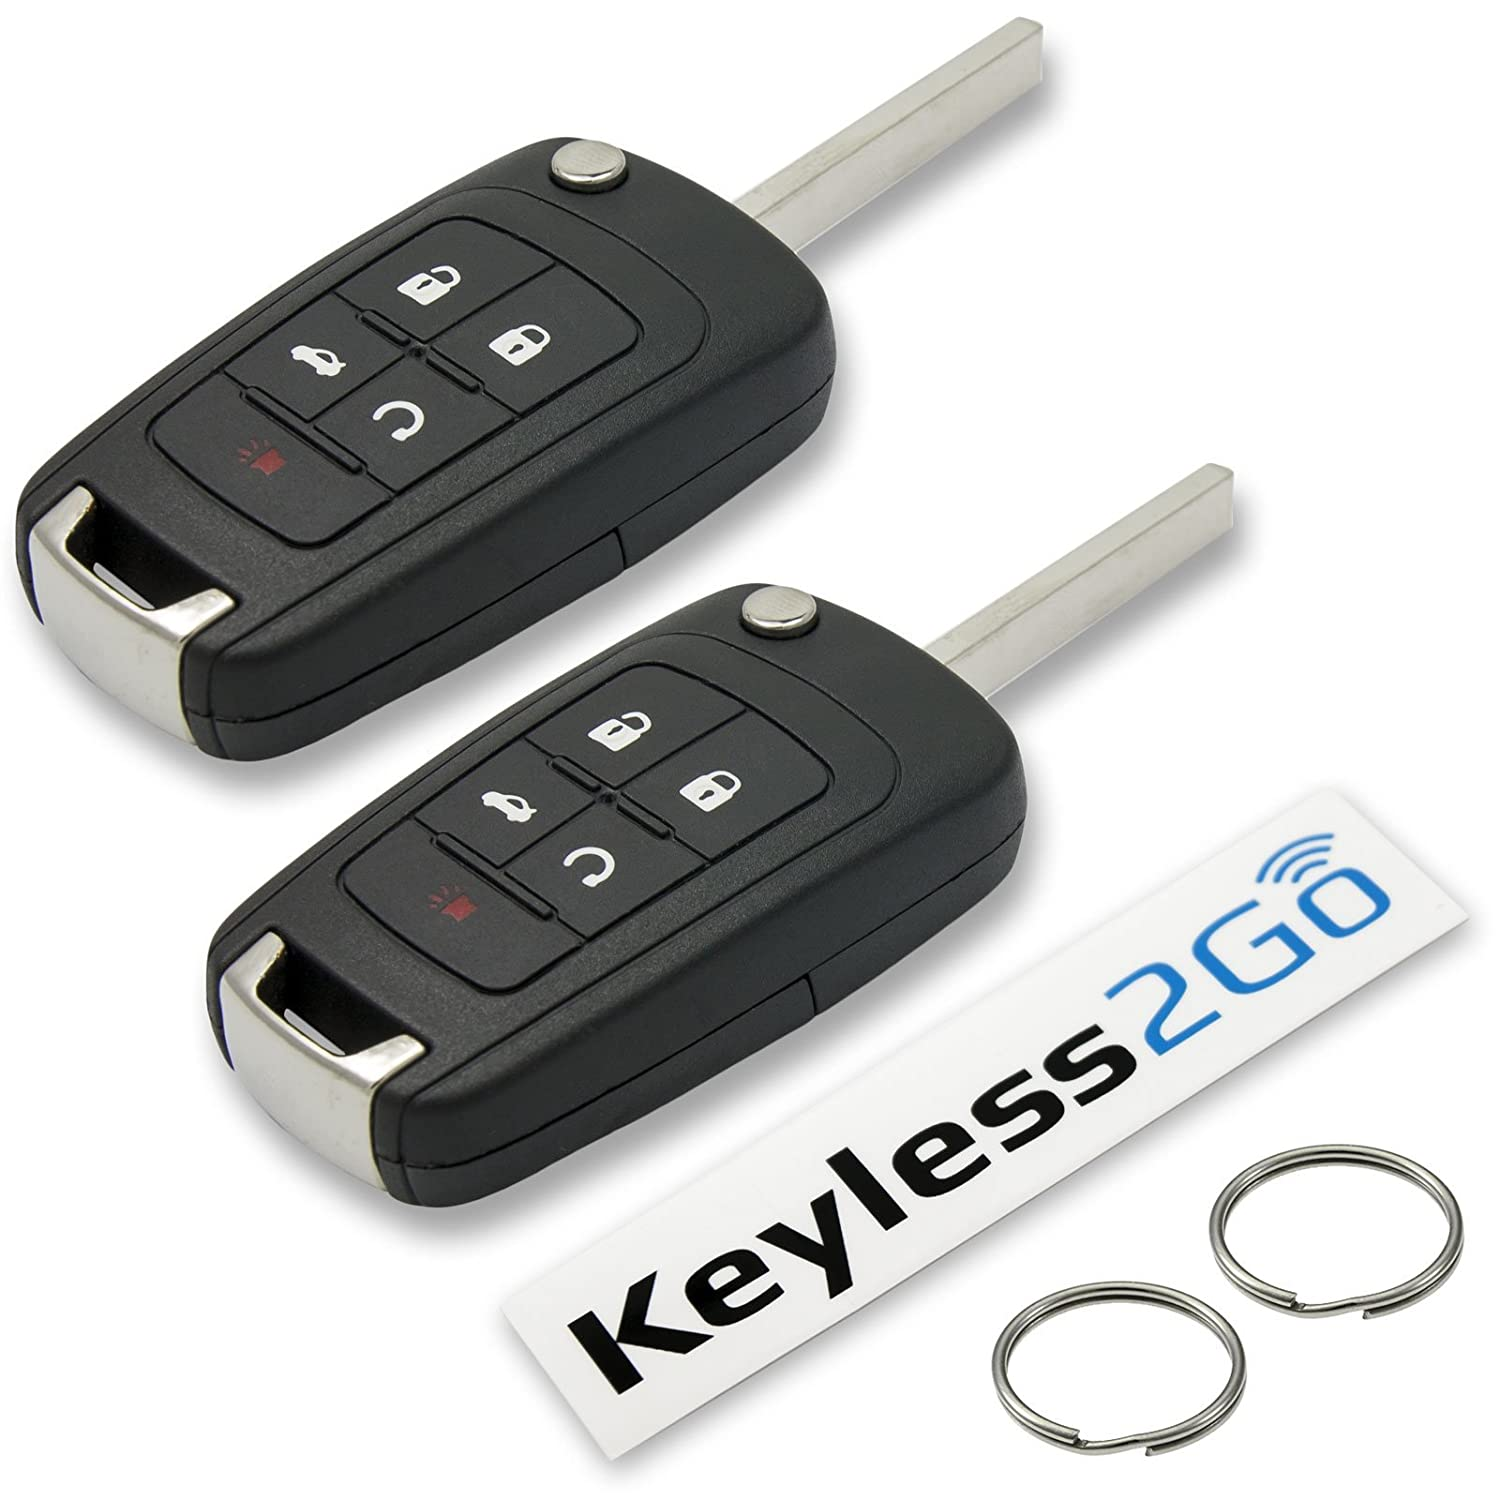 Keyless2Go New Keyless Remote 5 Button Flip Car Key Fob for Vehicles That Use FCC OHT01060512 2 Pack